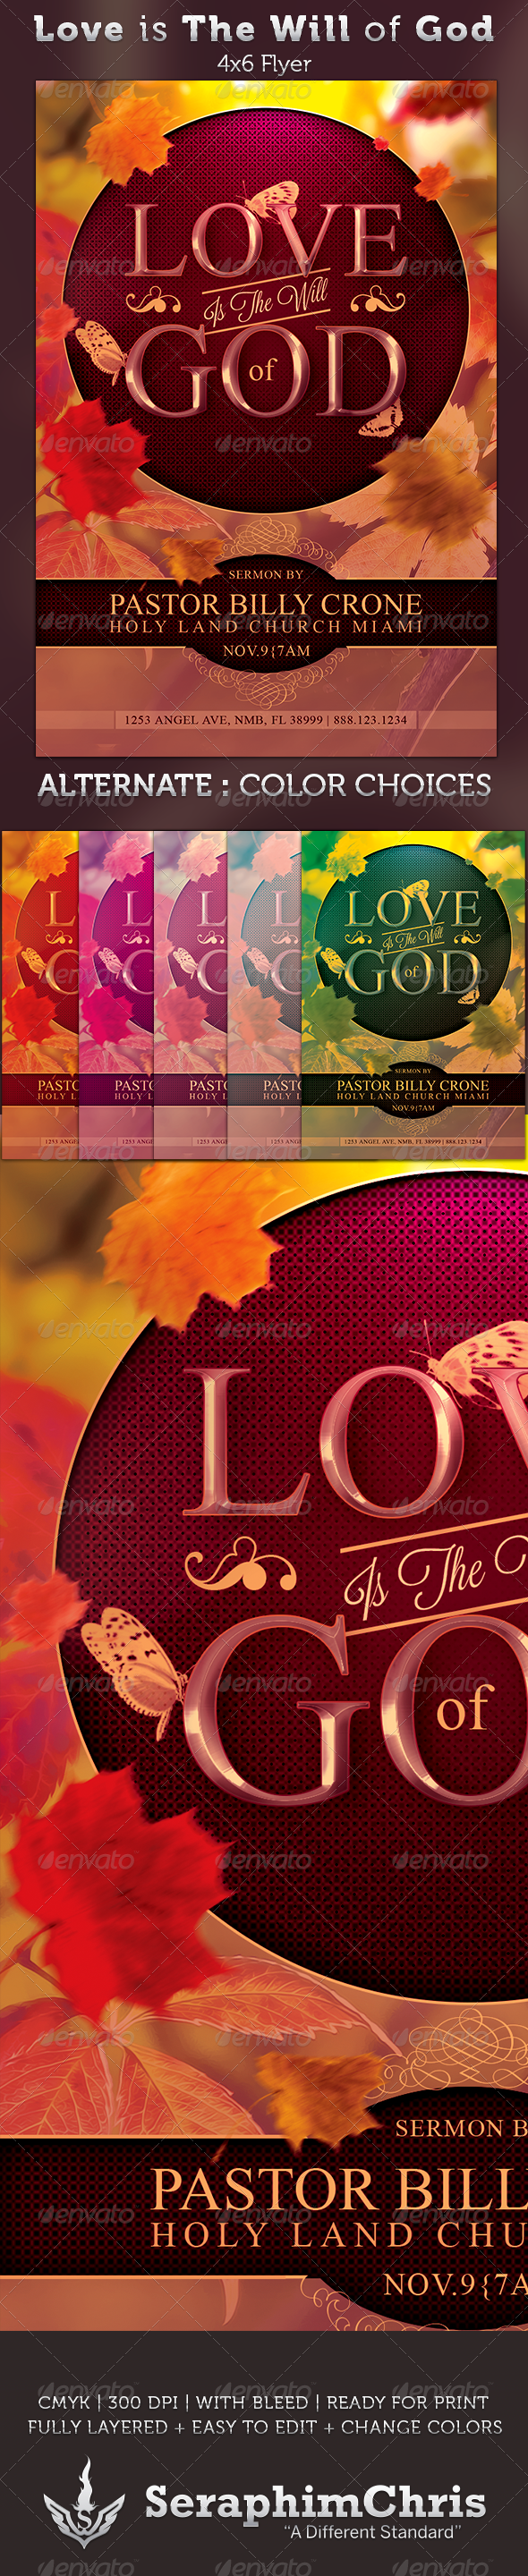 Love is The Will of God: Church Flyer Template - Church Flyers